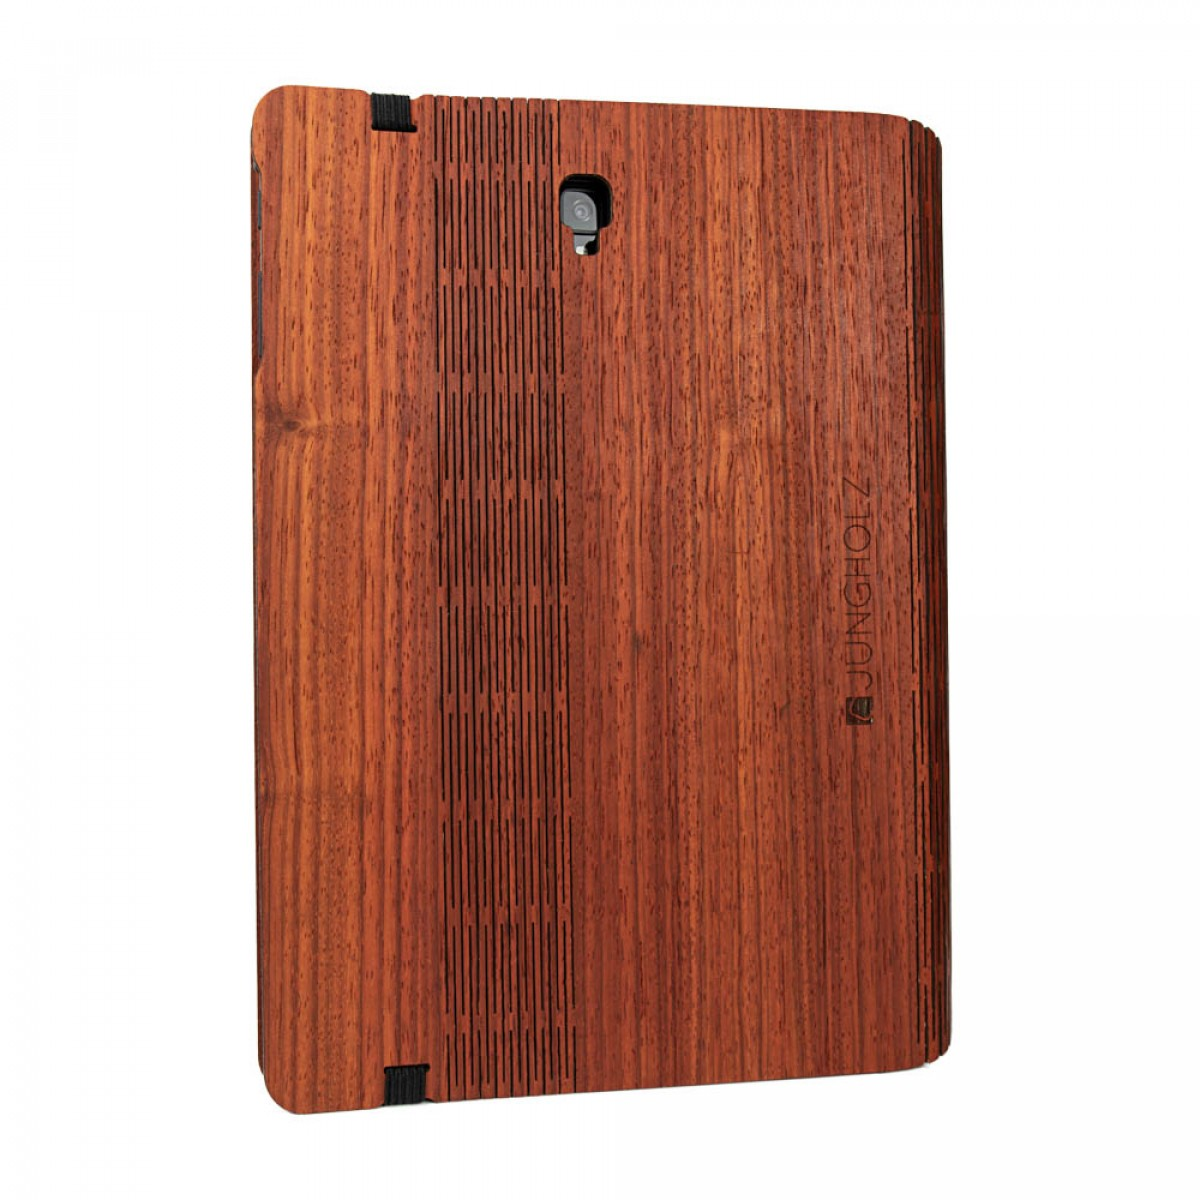 JUNGHOLZ Design WoodCase, Tablet, Padouk, Samsung Galaxy Tab S4